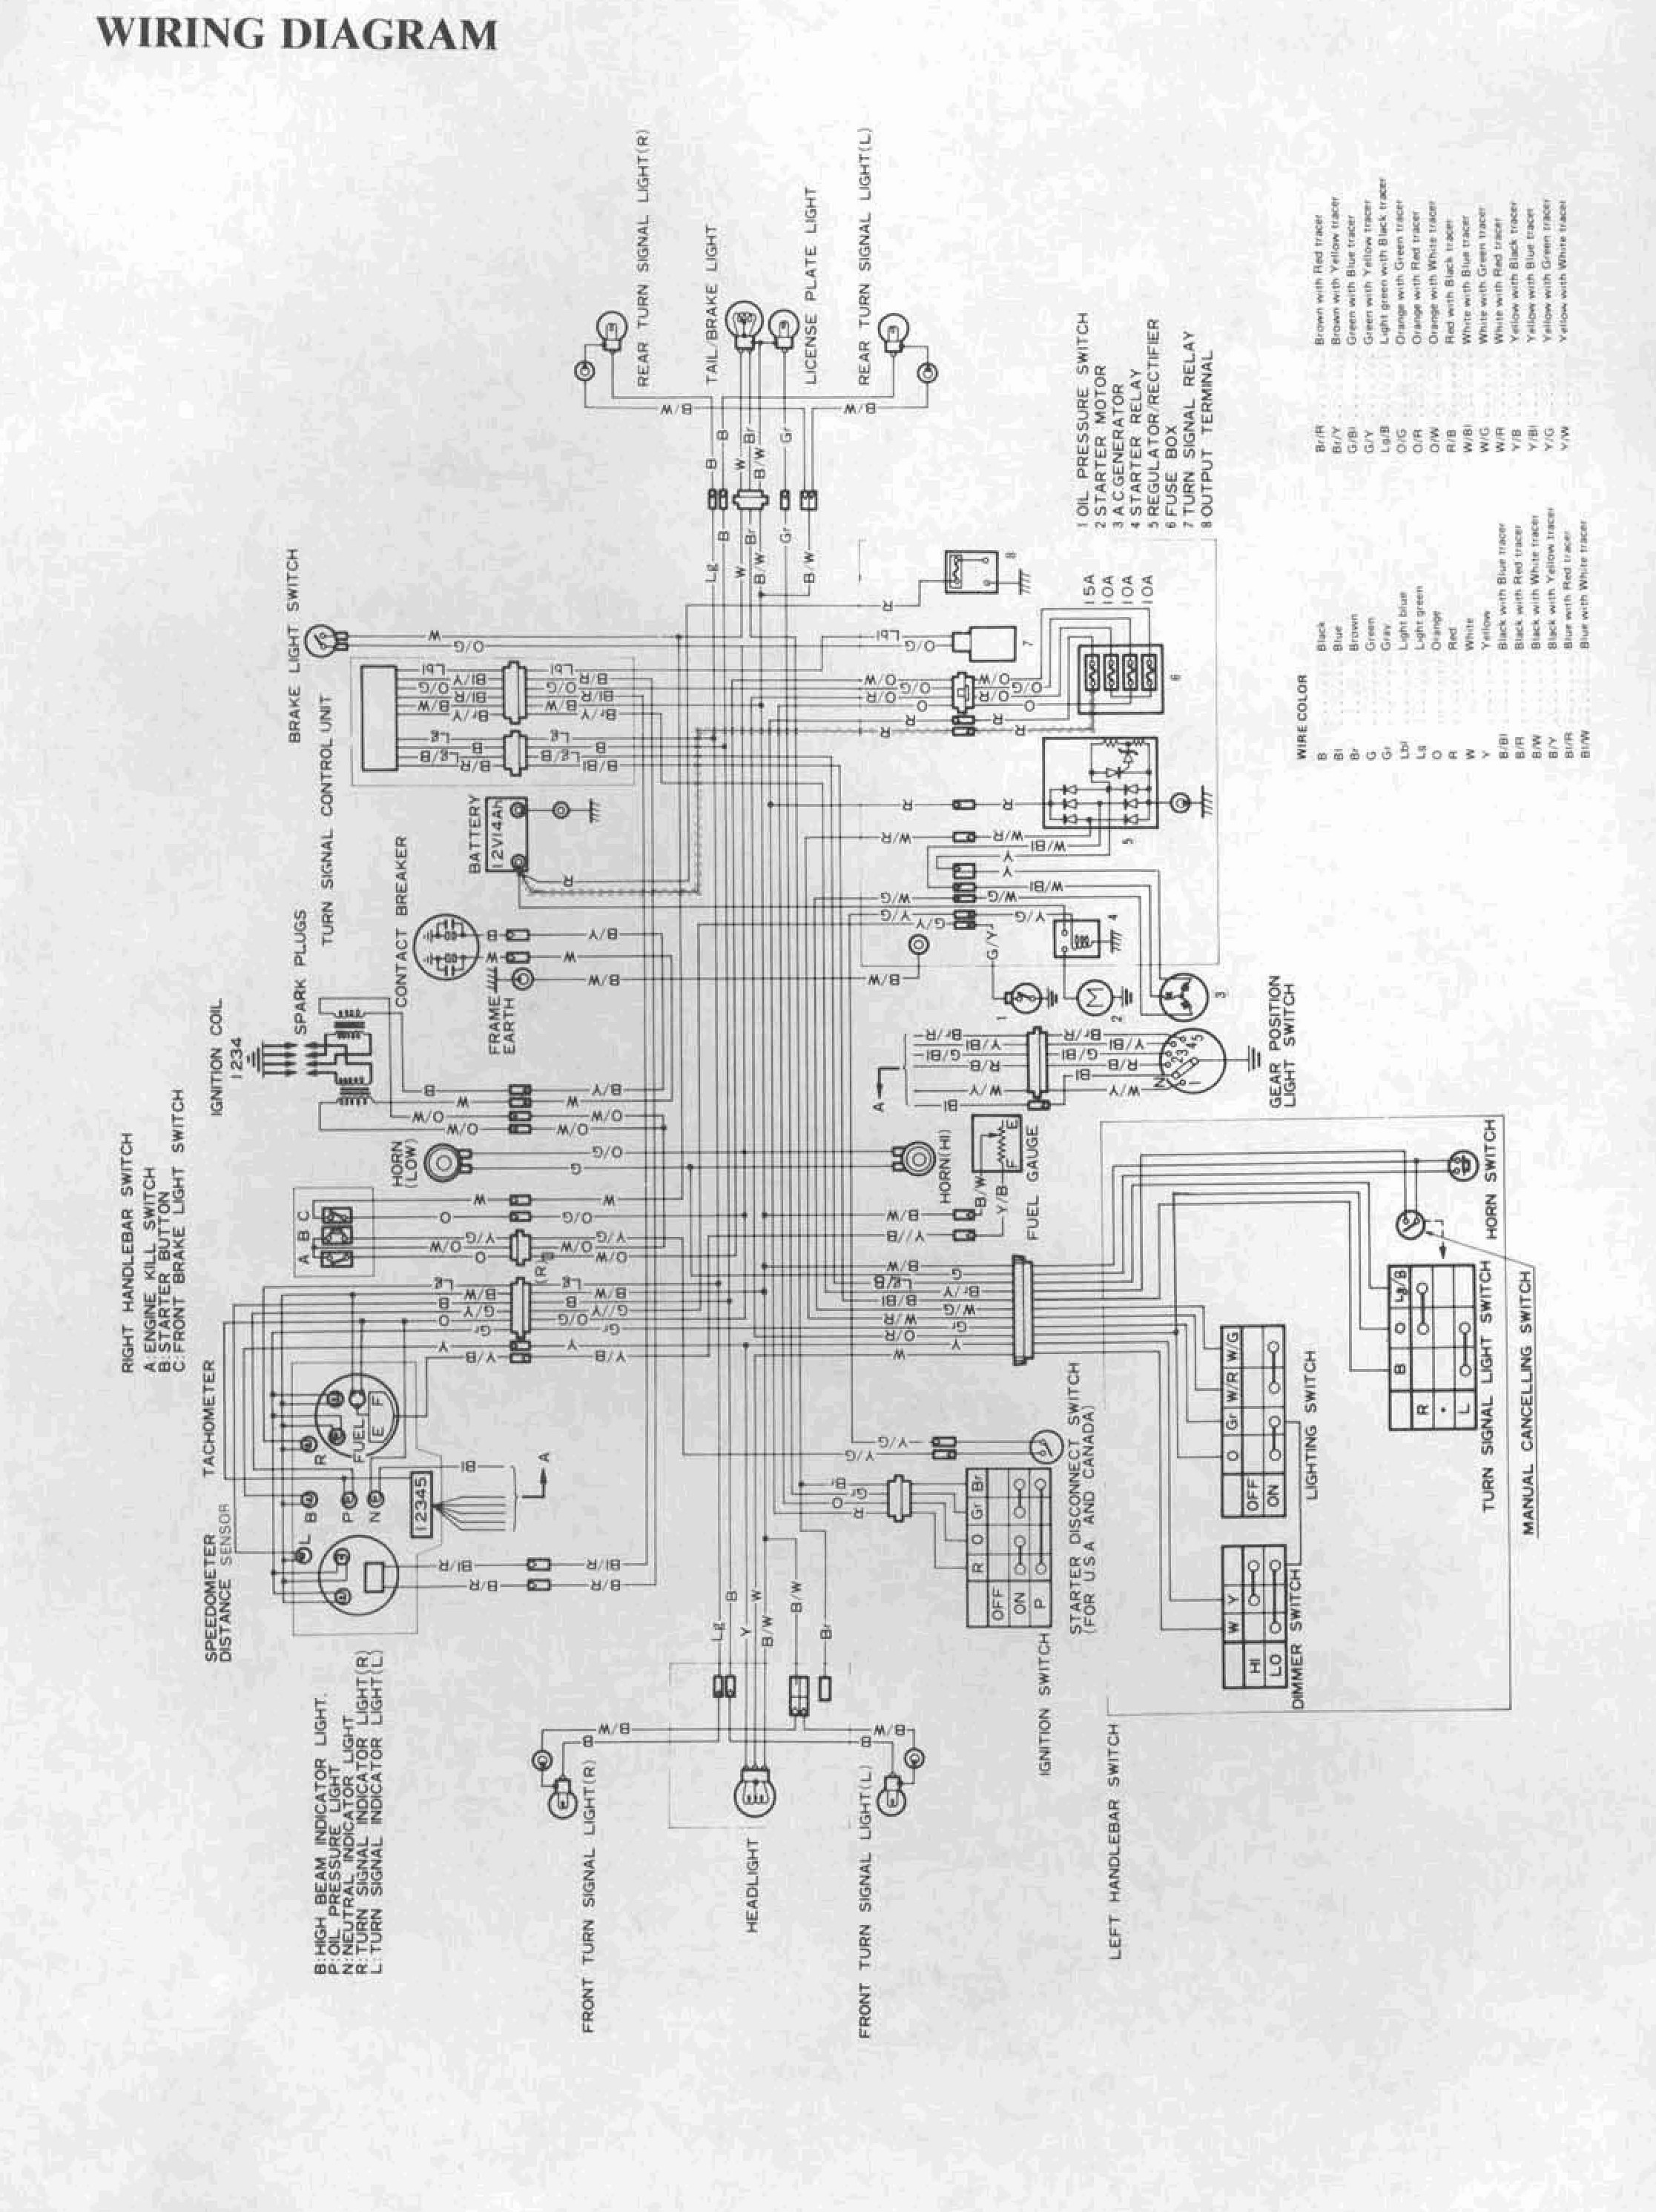 1982 Suzuki Gs850 Wiring Diagram Bikecliff S Website Of 1982 Suzuki Gs850 Wiring Diagram 1980 Suzuki Ts250 Wiring Diagram Wiring Diagrams